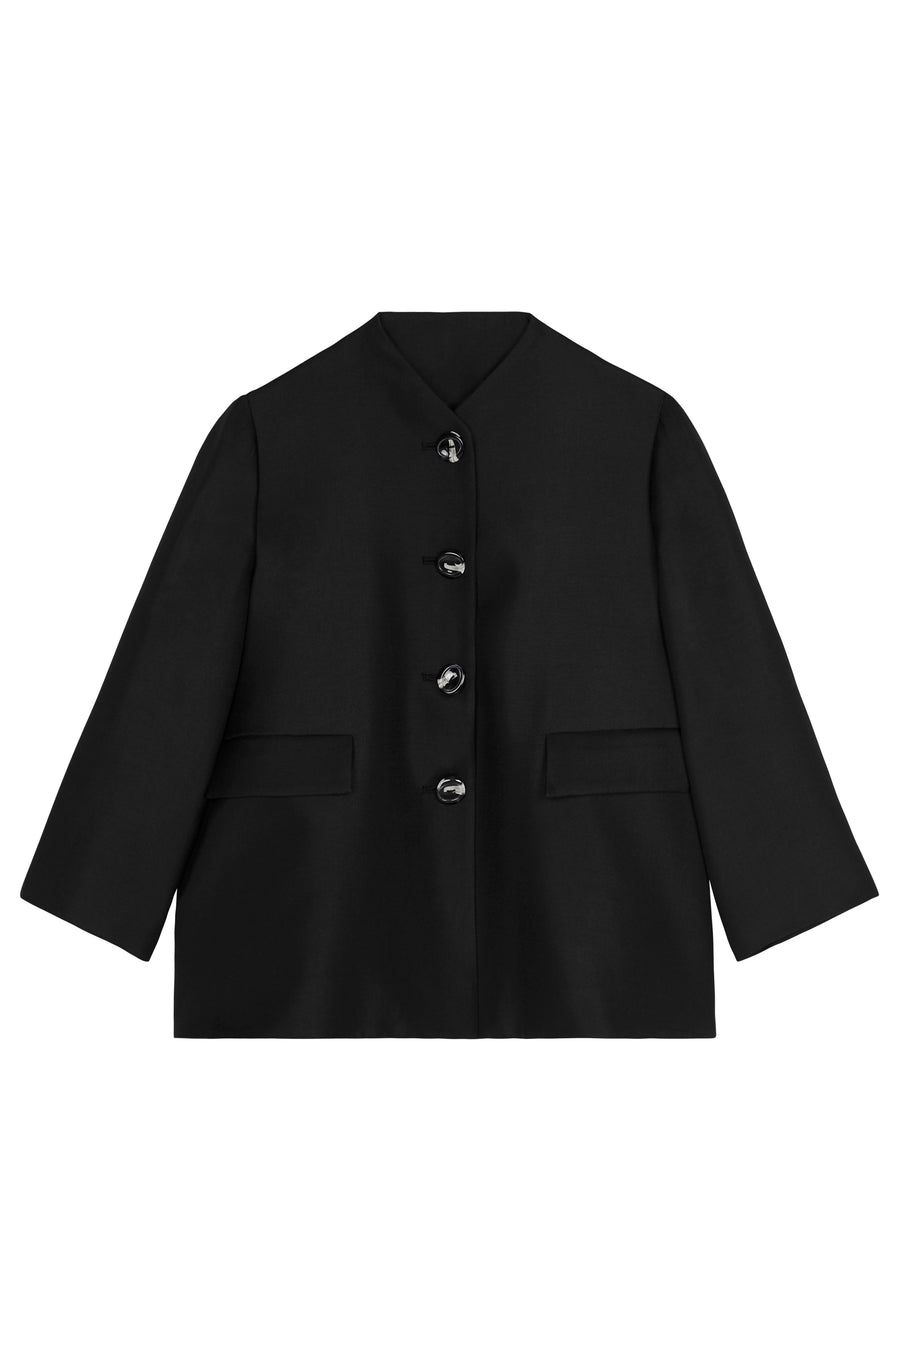 Swing Jacket in Black